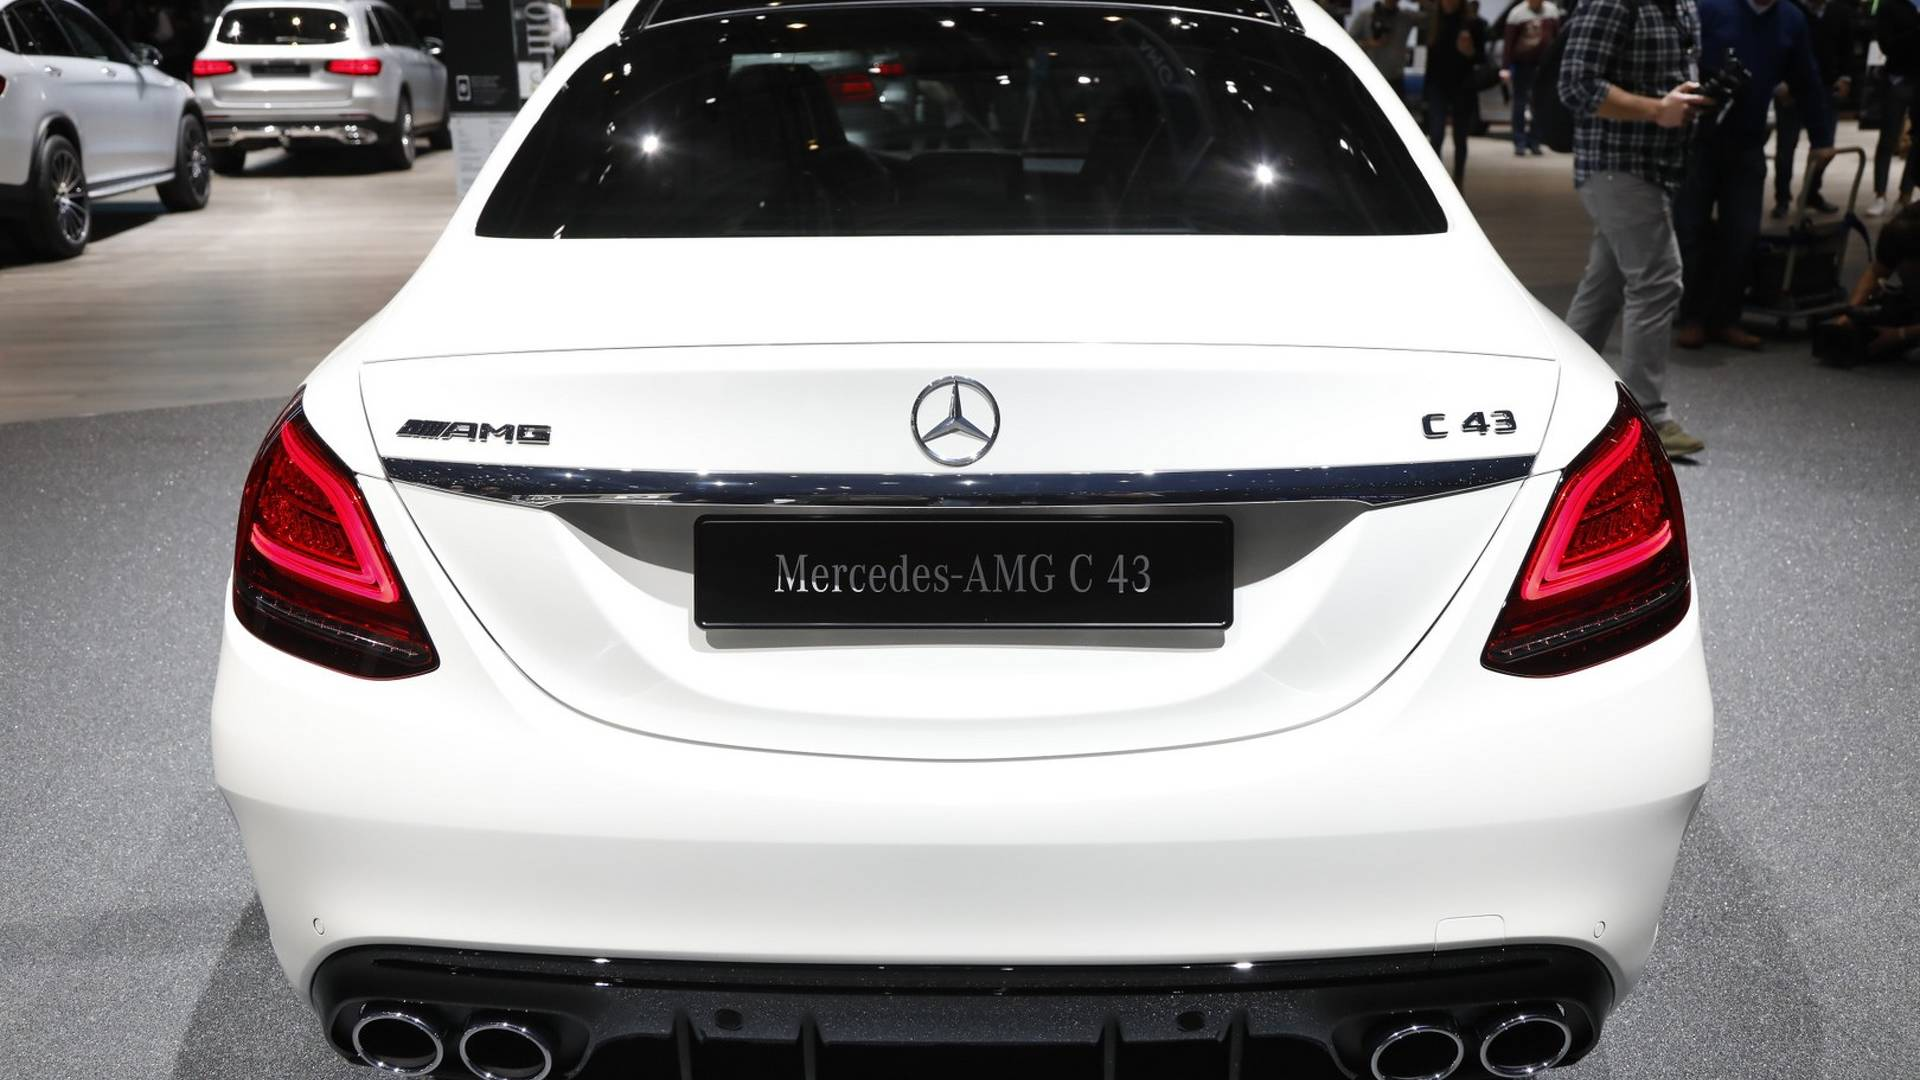 Mercedes-AMG C43 Live From Geneva Motor Show